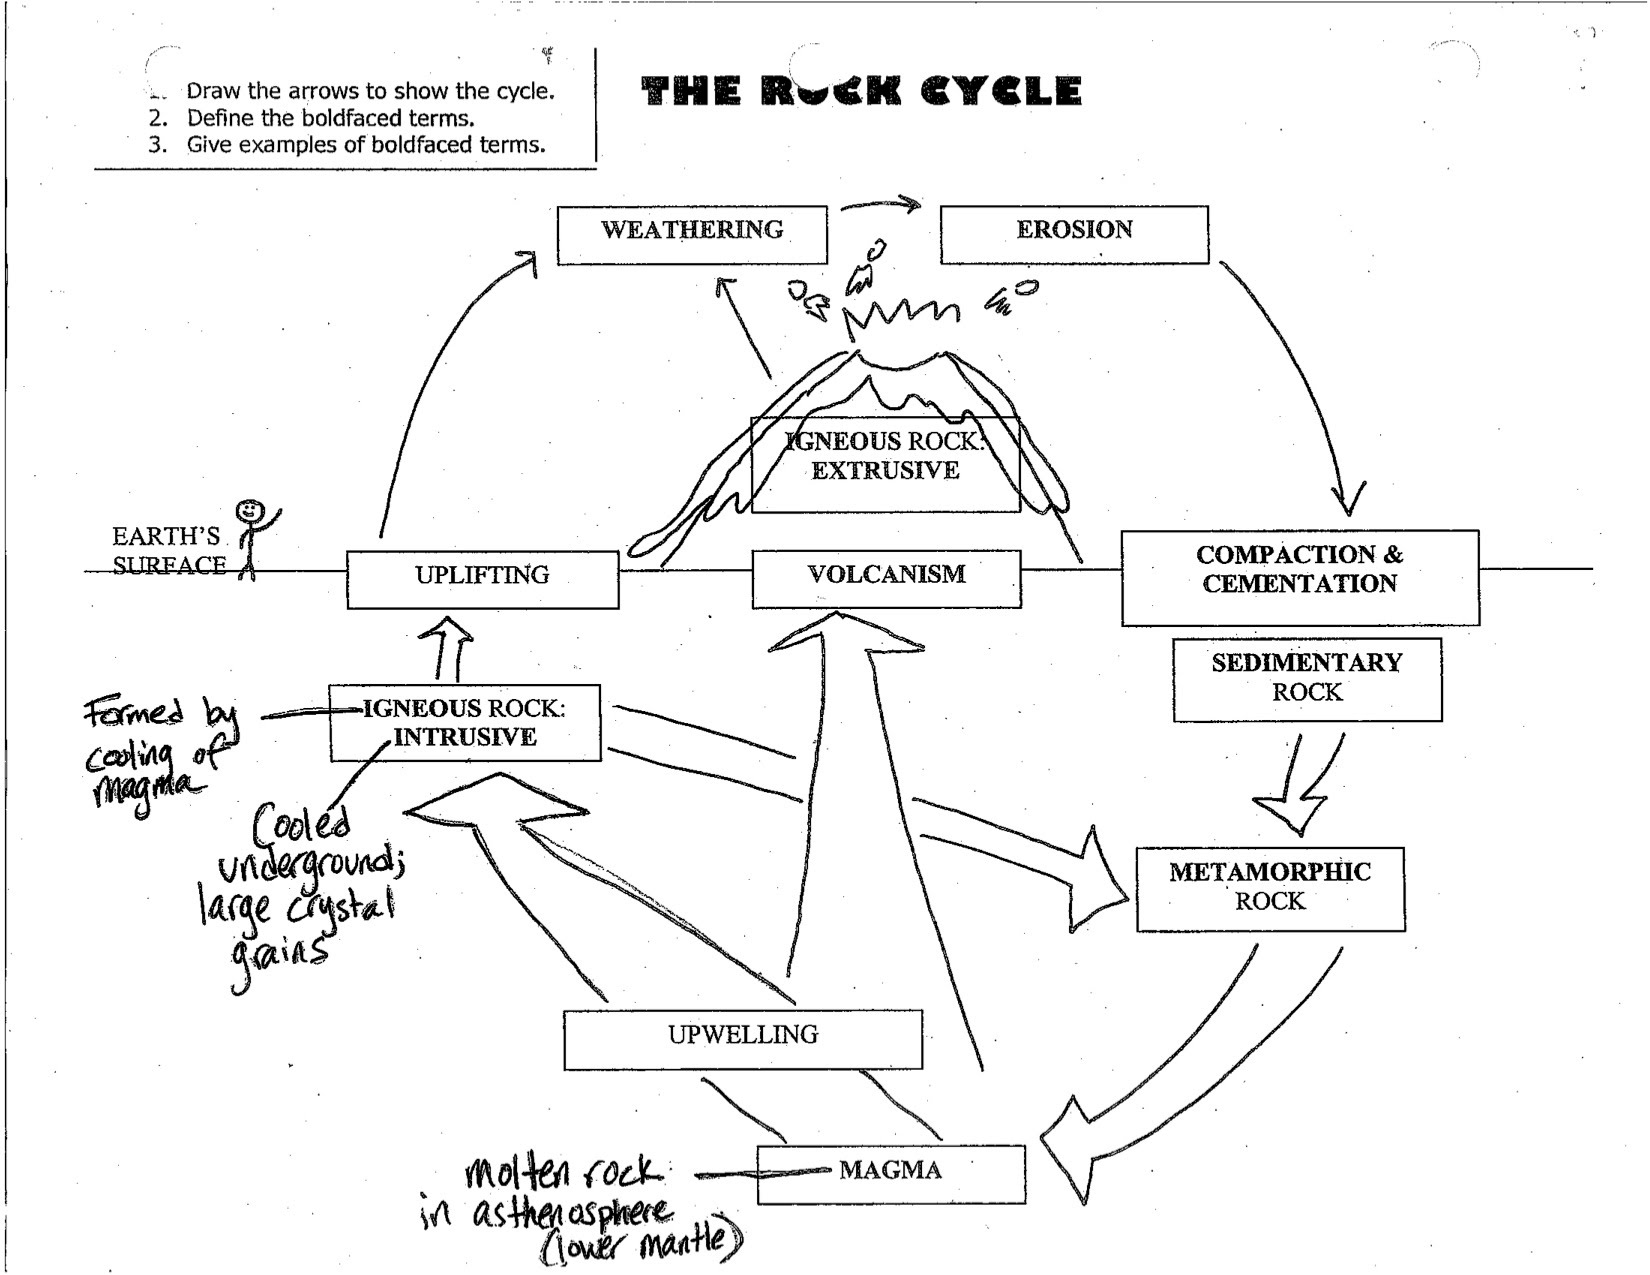 Worksheets Rock Cycle Worksheet the rock cycle worksheet free worksheets library download and other popular worksheets